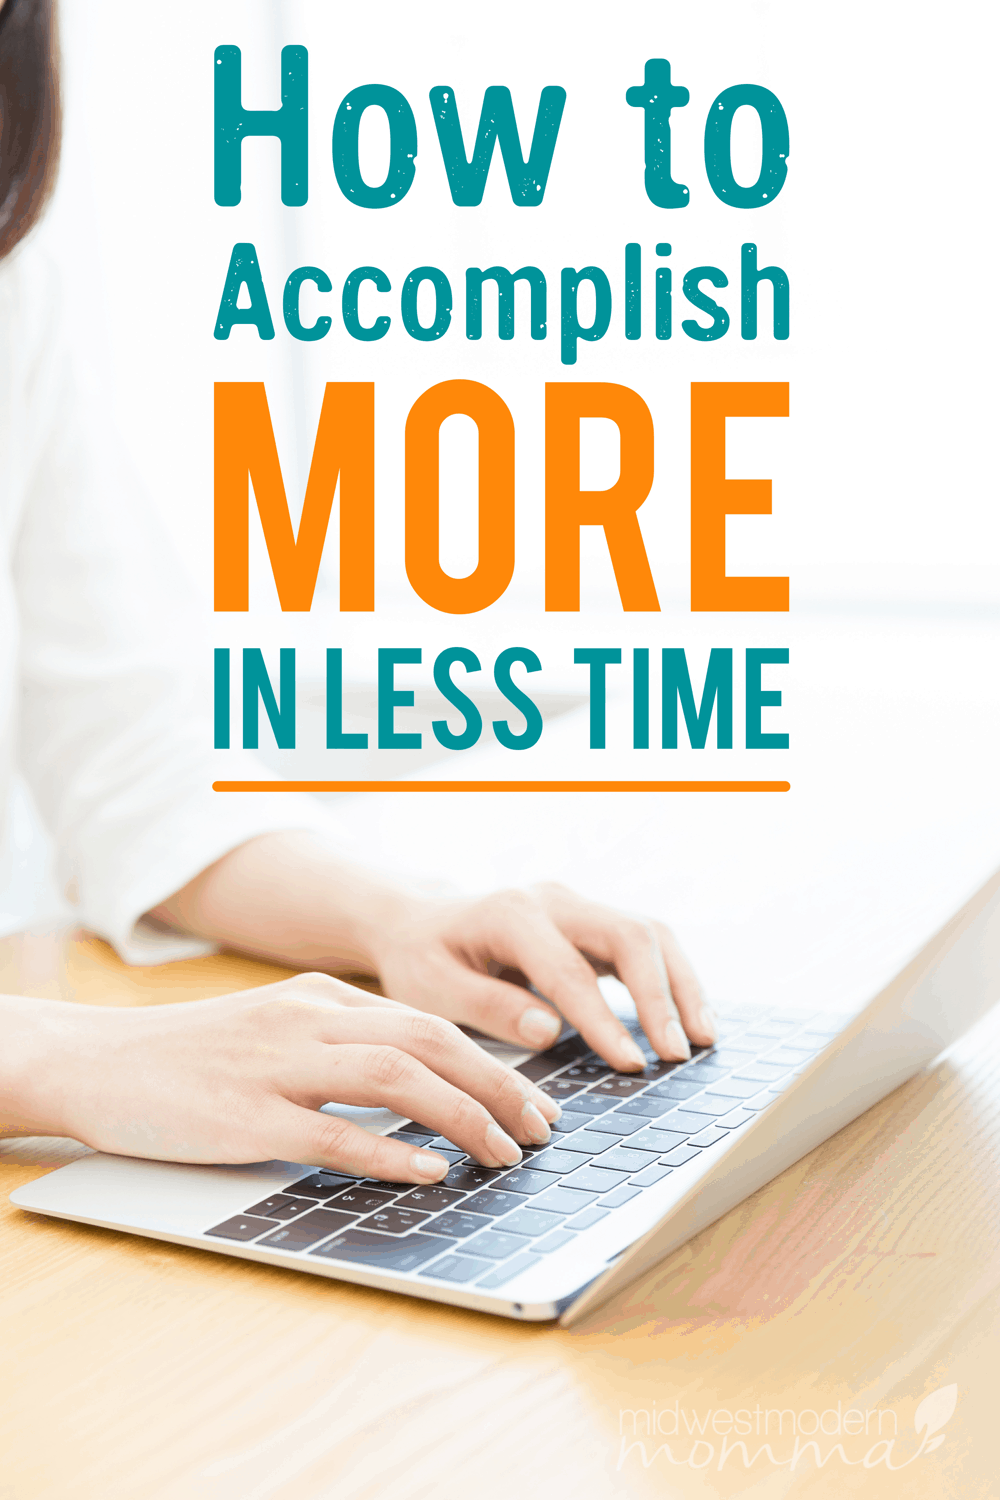 Don't miss our Time Management Tips To Accomplish More In Less Time! These are ideal for work at home moms, stay at home moms, and any small businesses!